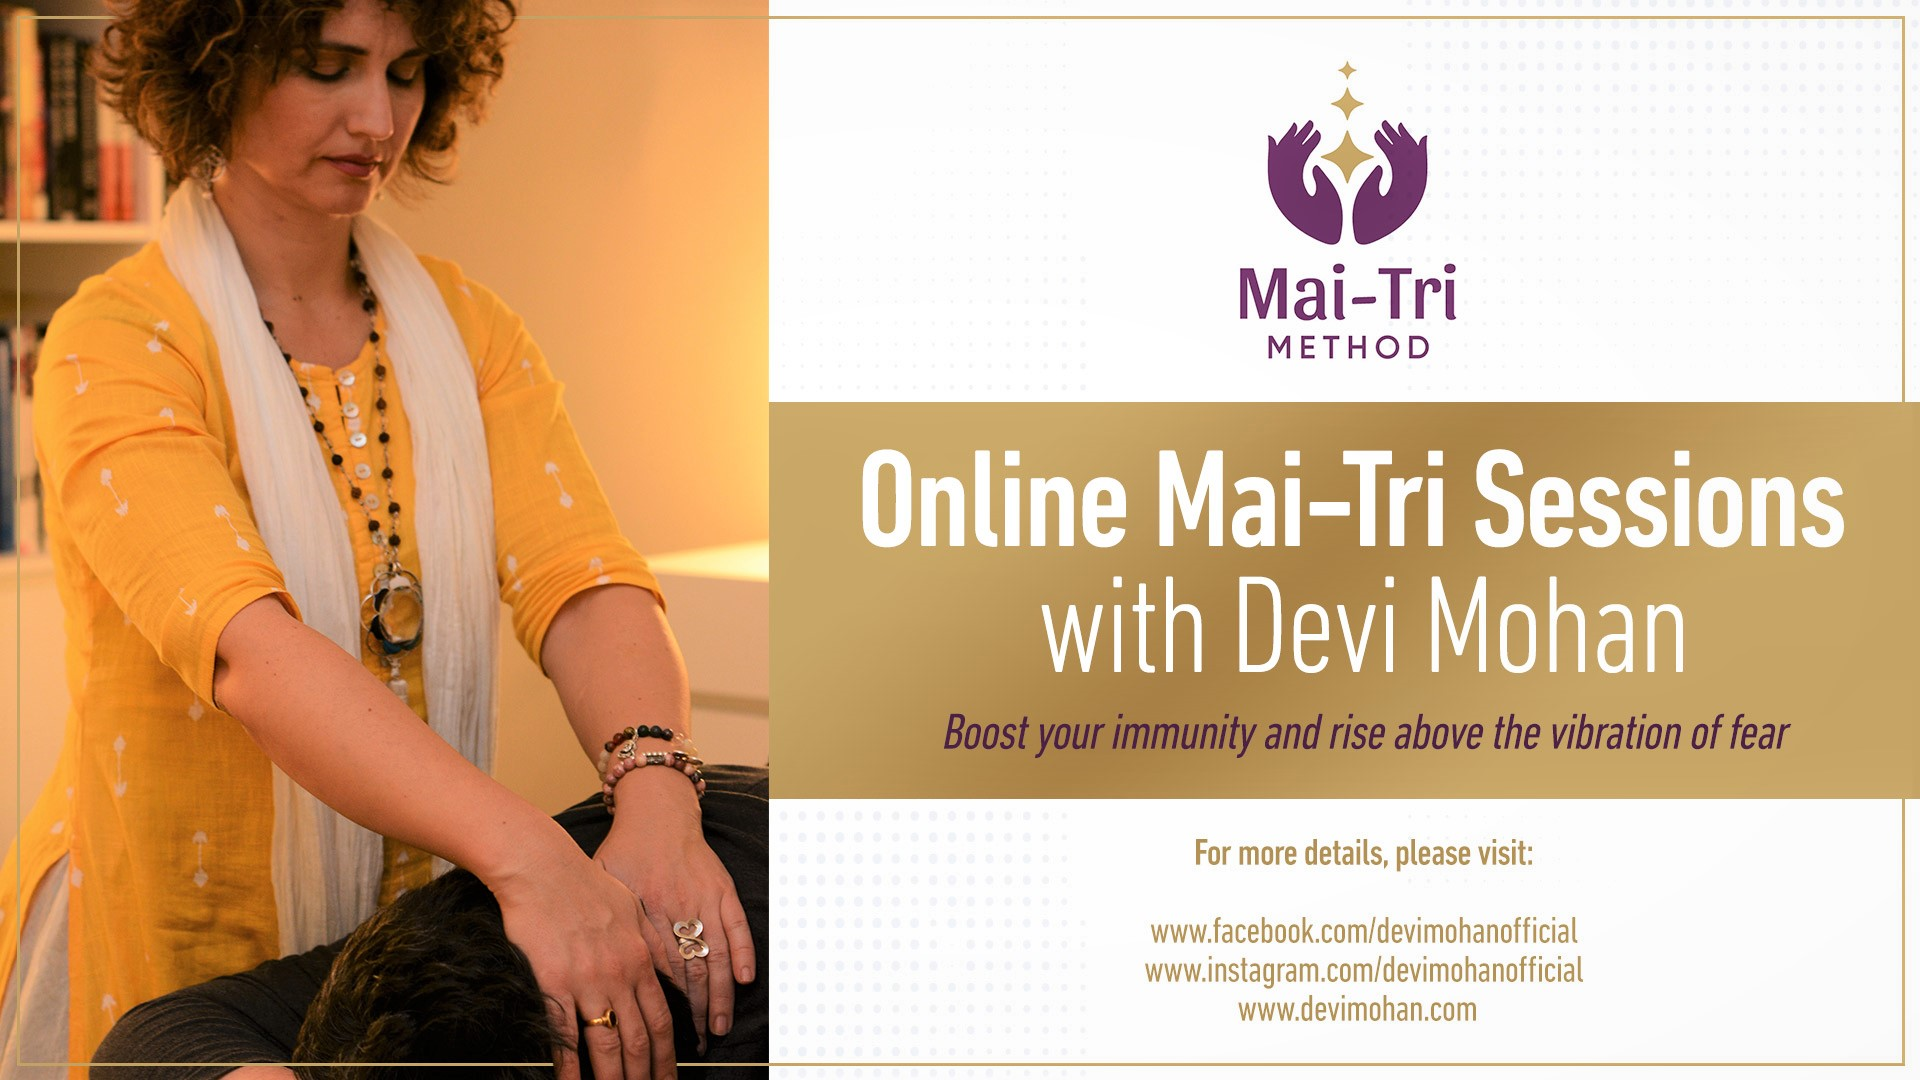 online Mai-Tri Sessions with Devi Mohan